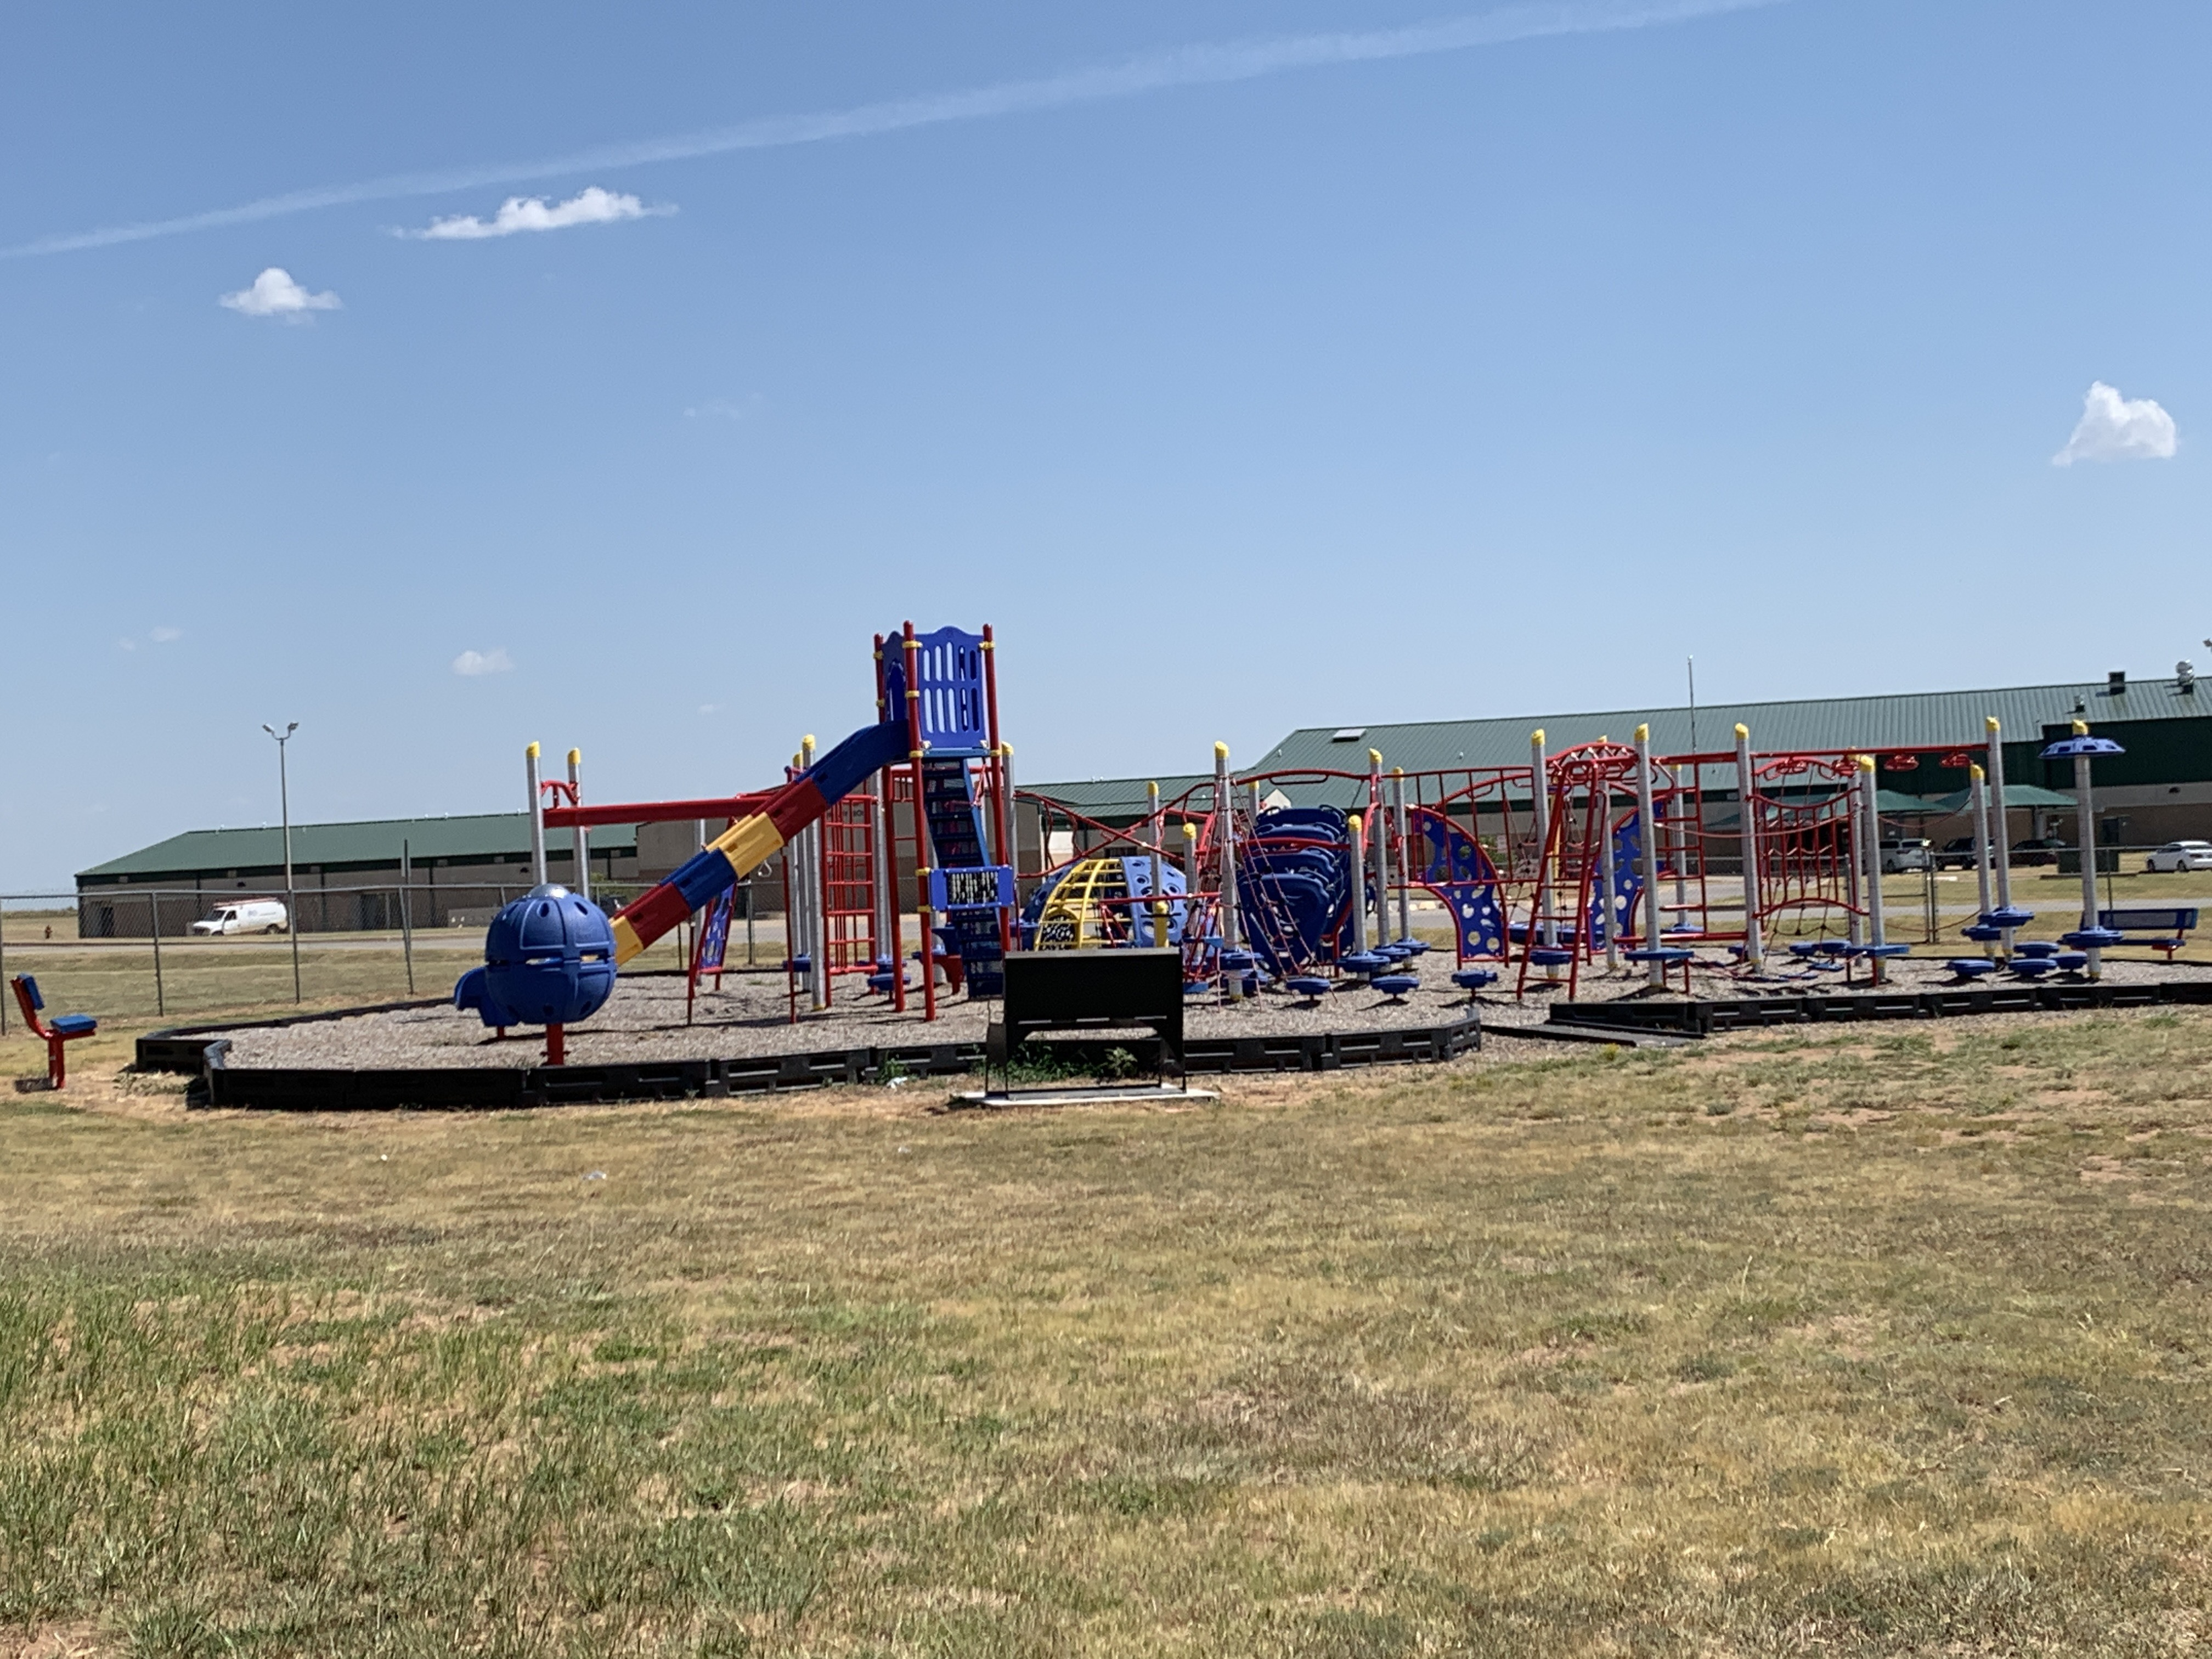 BOND Int Playground Pic 2